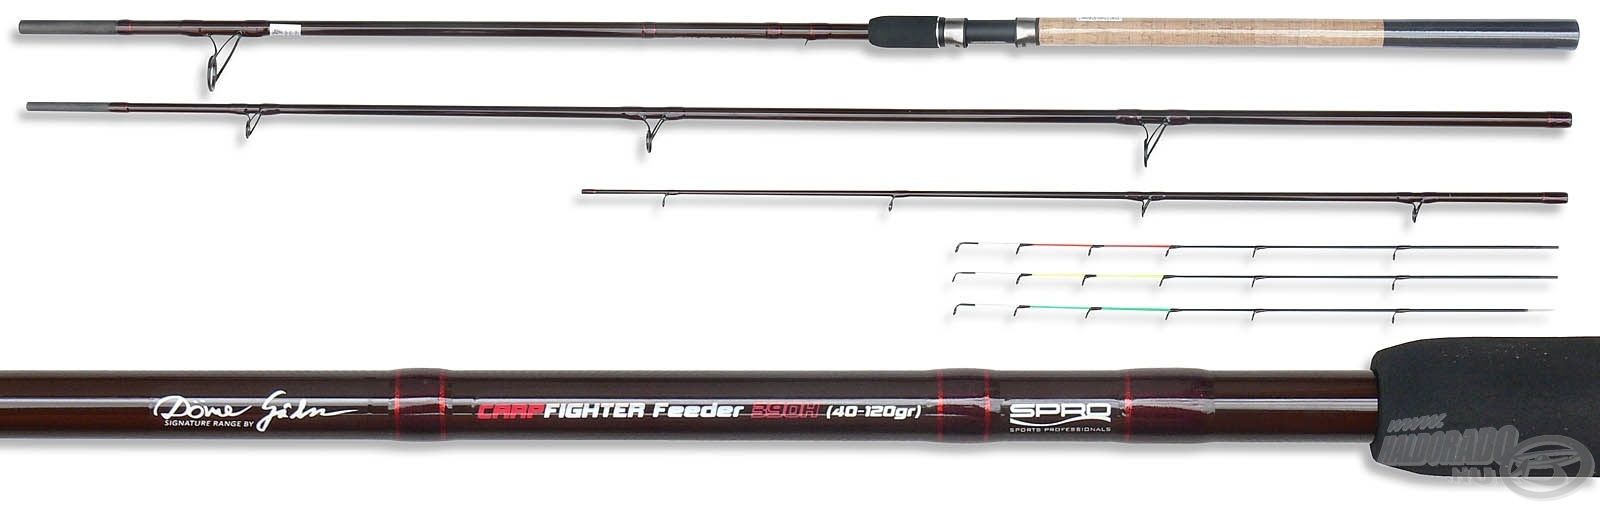 SPRO Team Feeder Carp Fighter 360XXH - by D�me G�bor 19990Ft